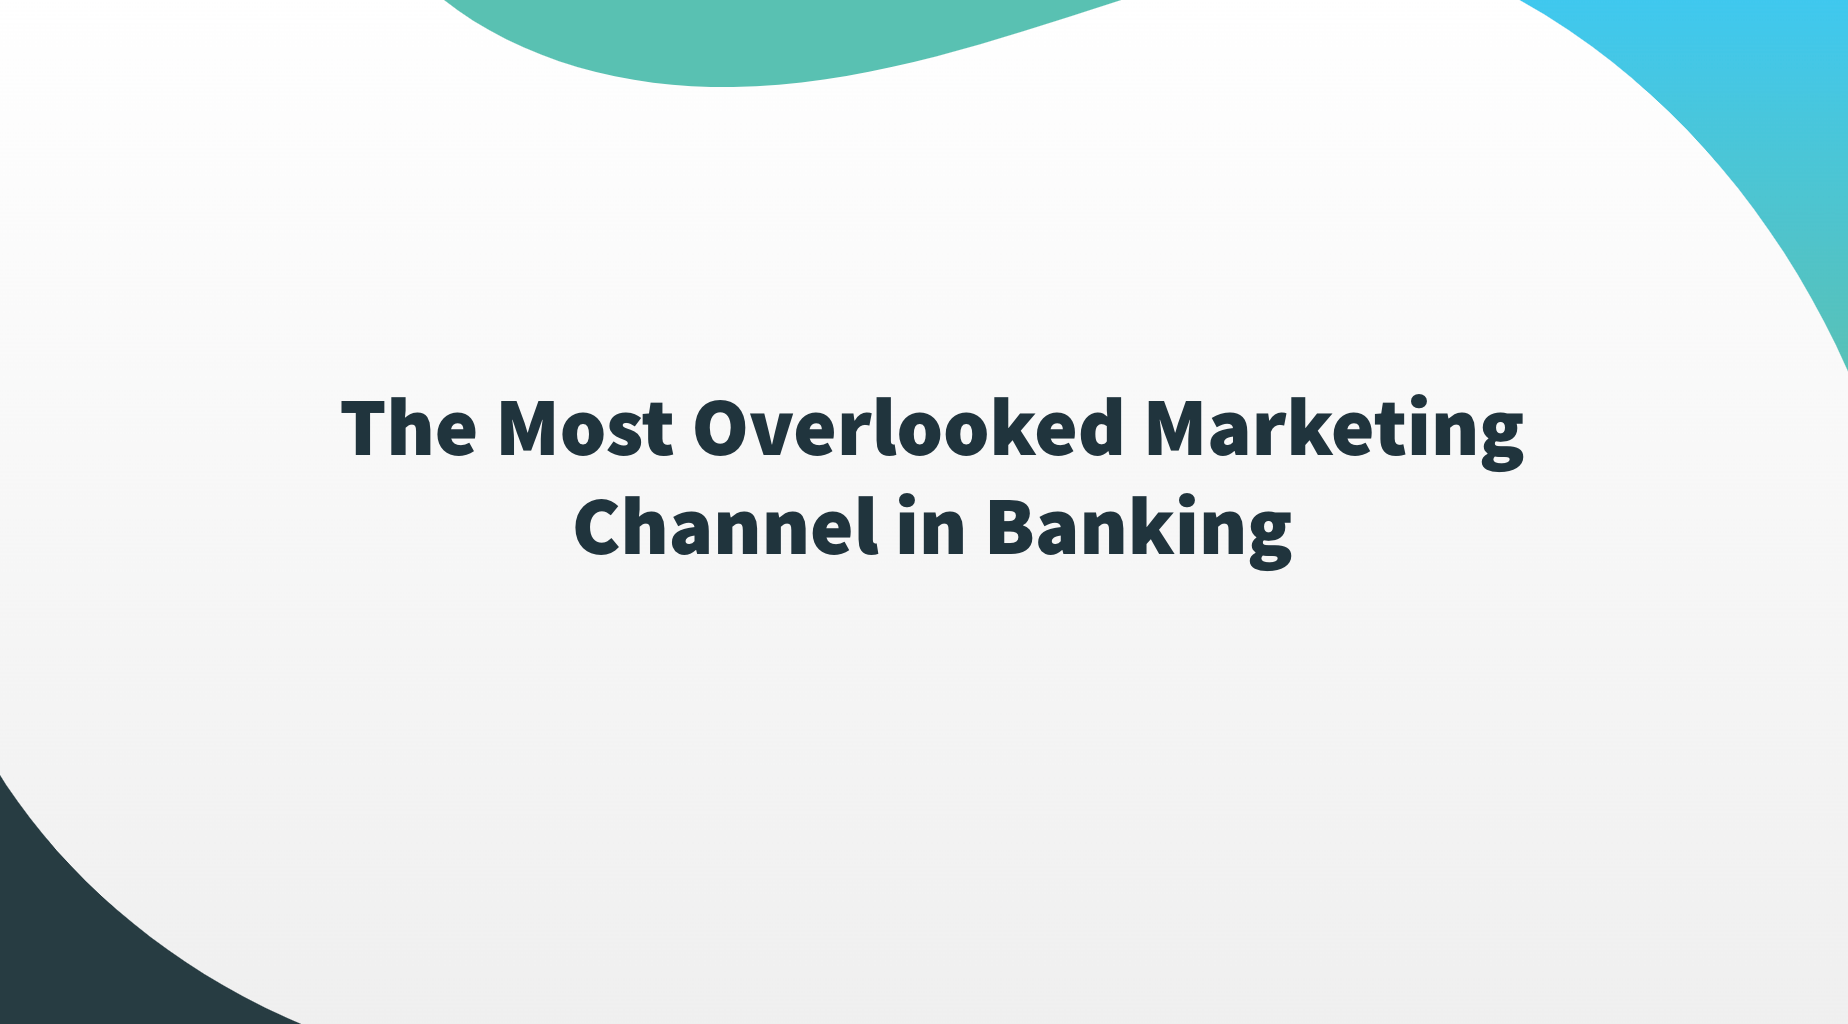 The Most Overlooked Marketing Channel in Banking